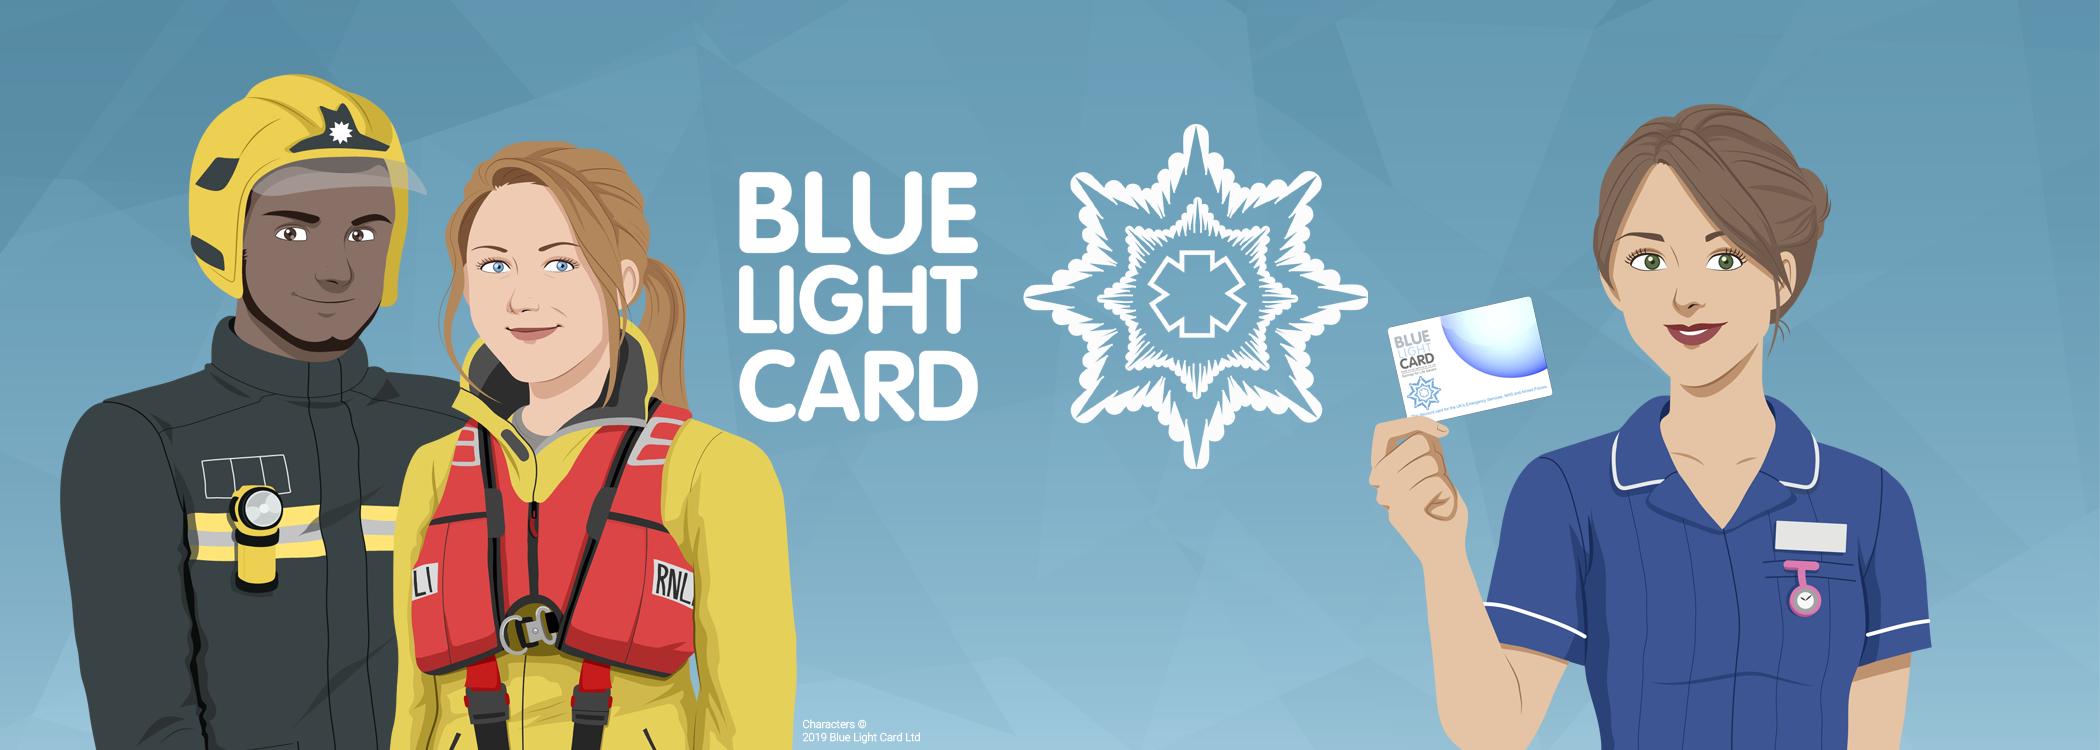 BLue Light Card the UKs largest Emergency Service, NHS and Armed Forces Discount Provider